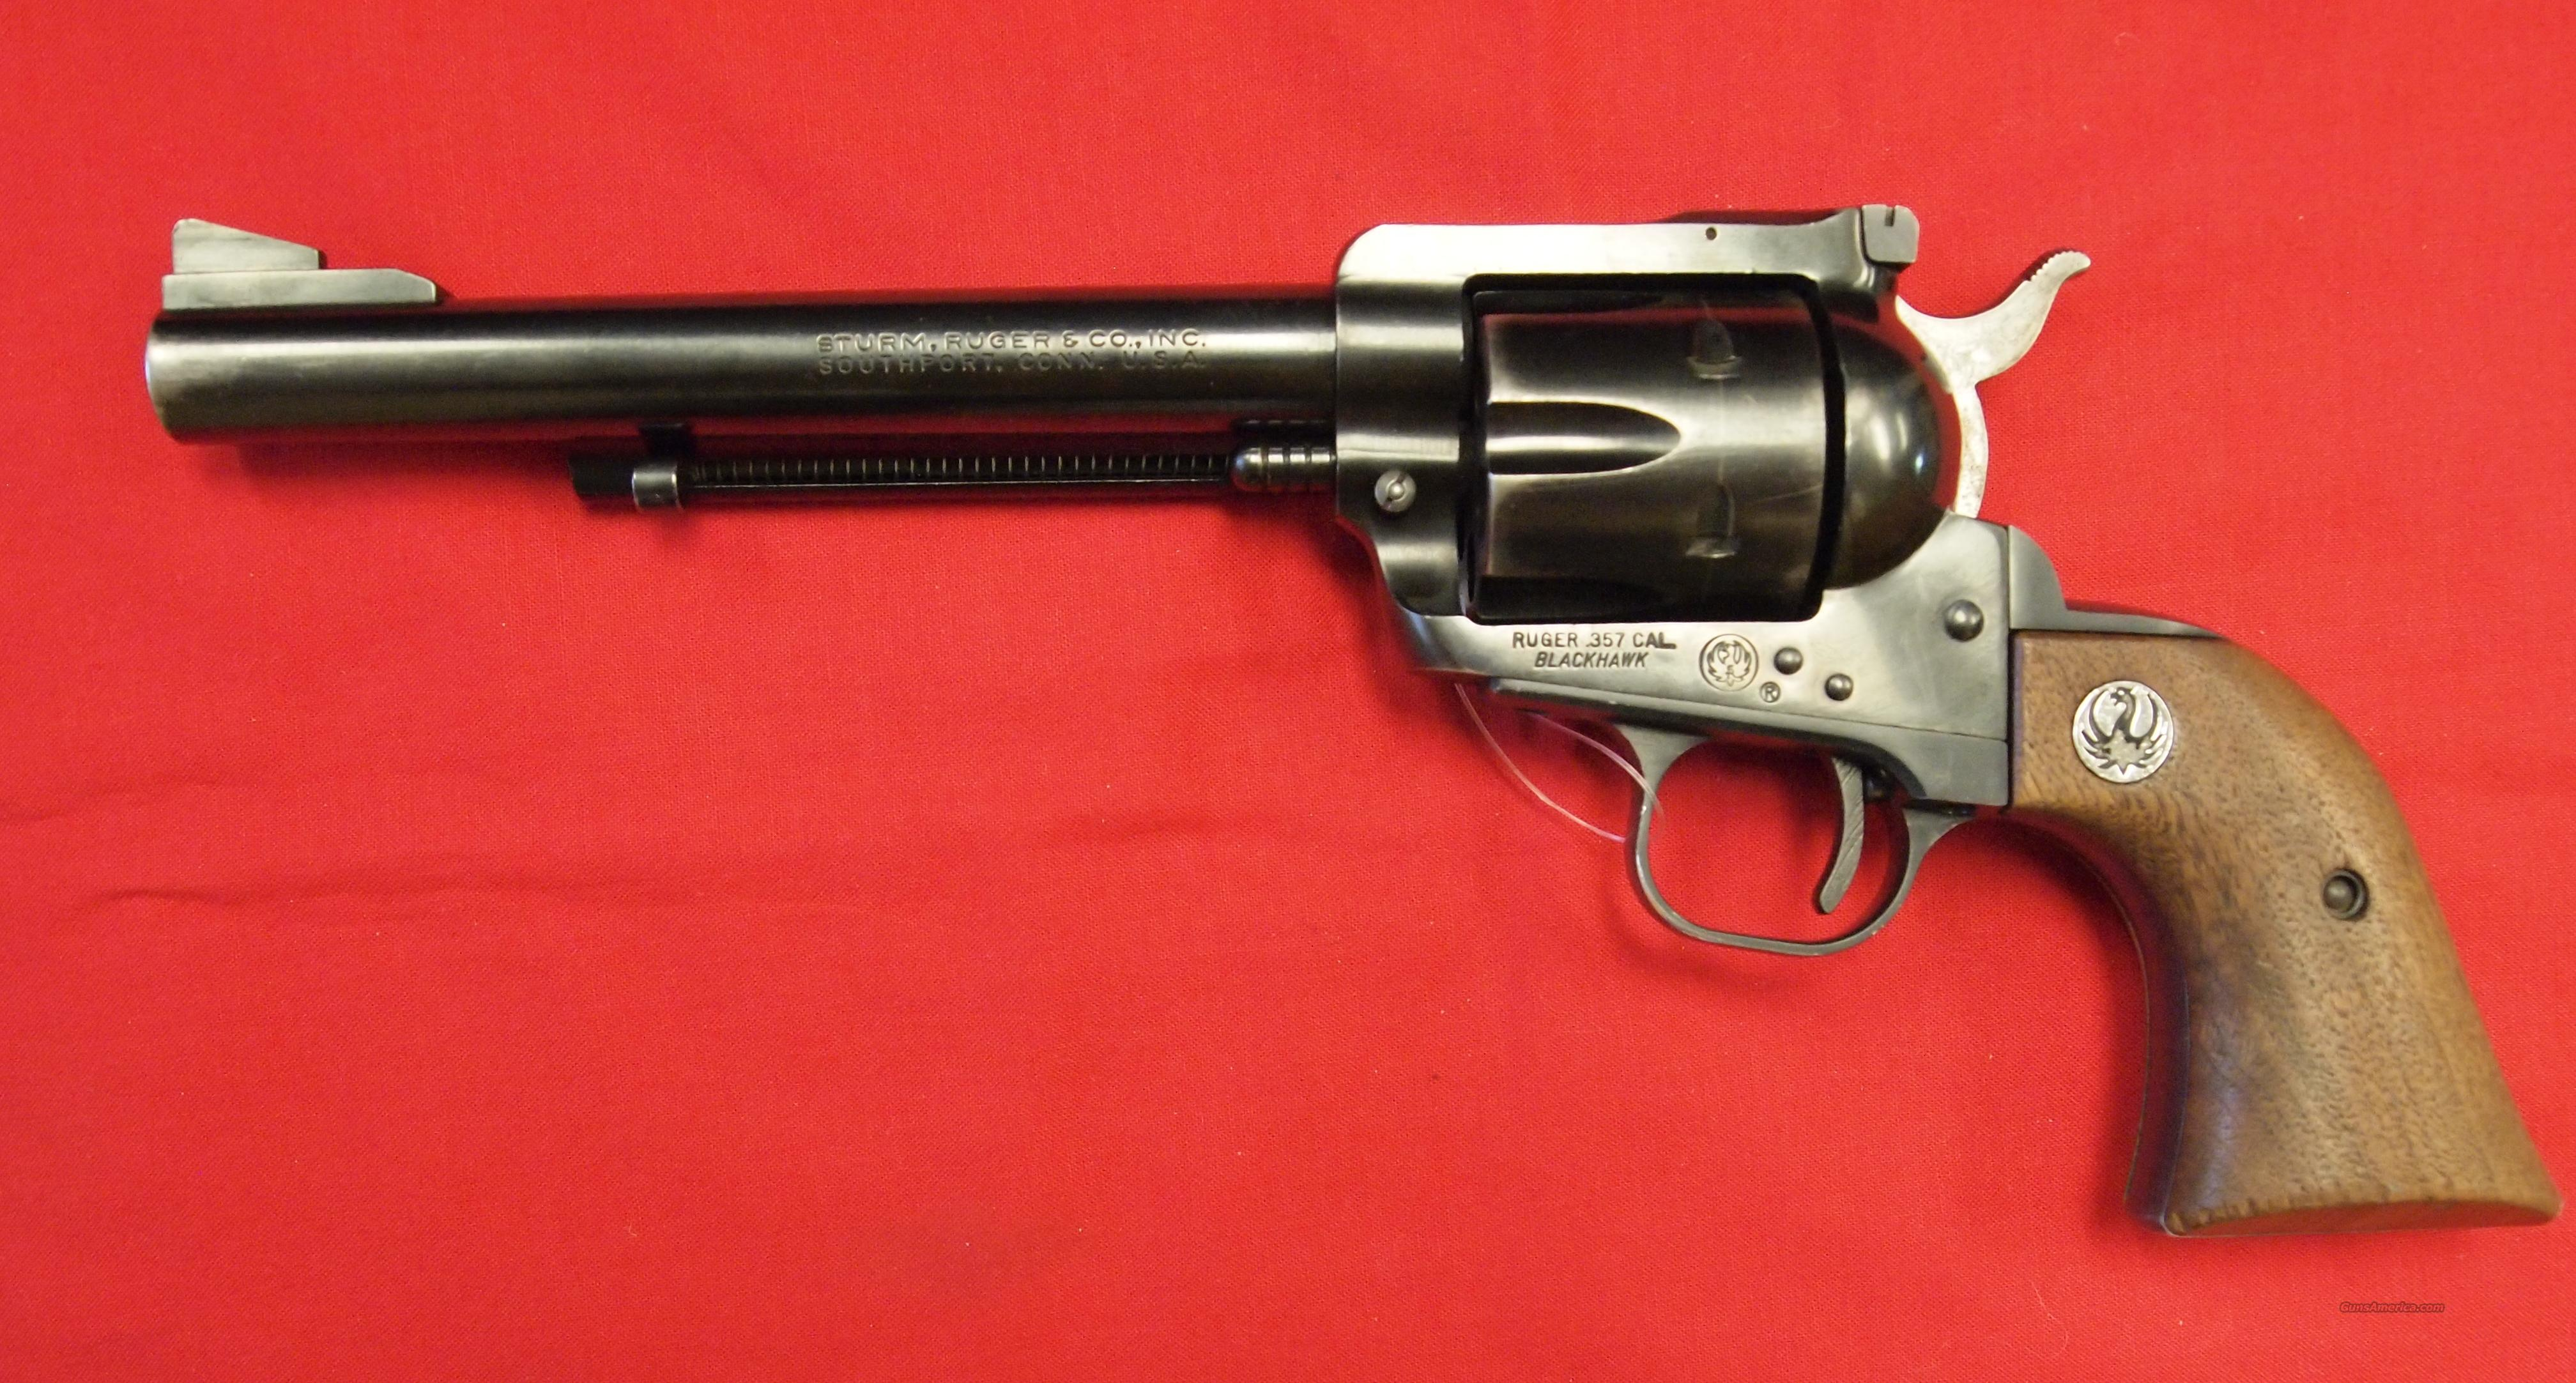 Ruger Blackhawk 3-Screw .357 MAG  Guns > Pistols > Ruger Single Action Revolvers > Blackhawk Type